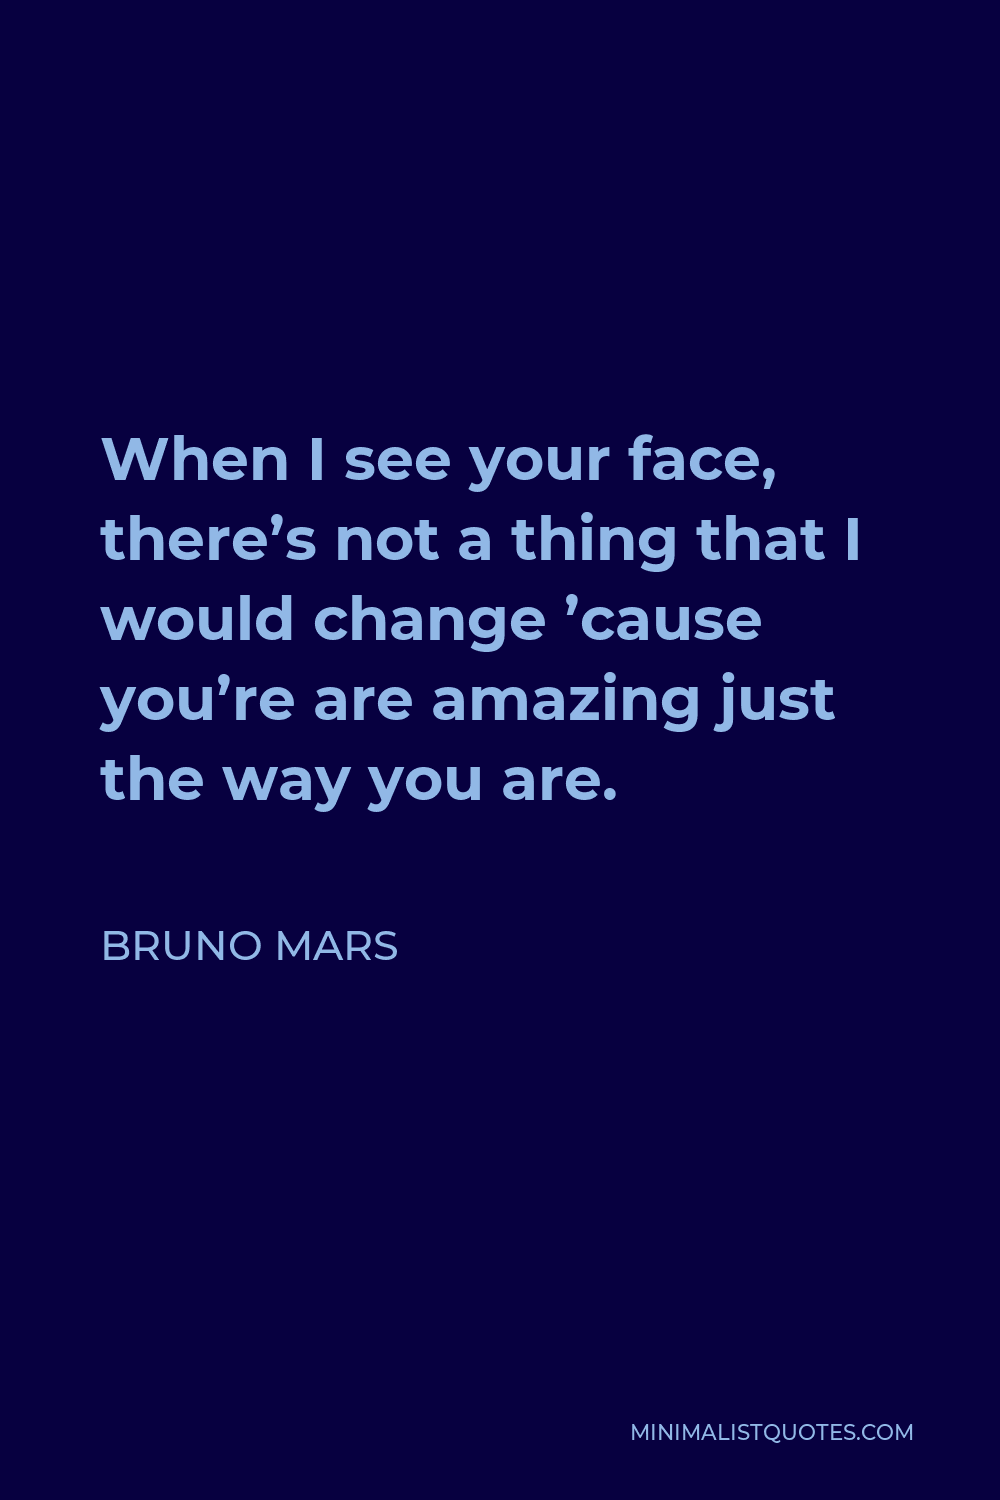 Bruno Mars Quote - When I see your face, there's not a thing that I would change 'cause you're are amazing just the way you are.